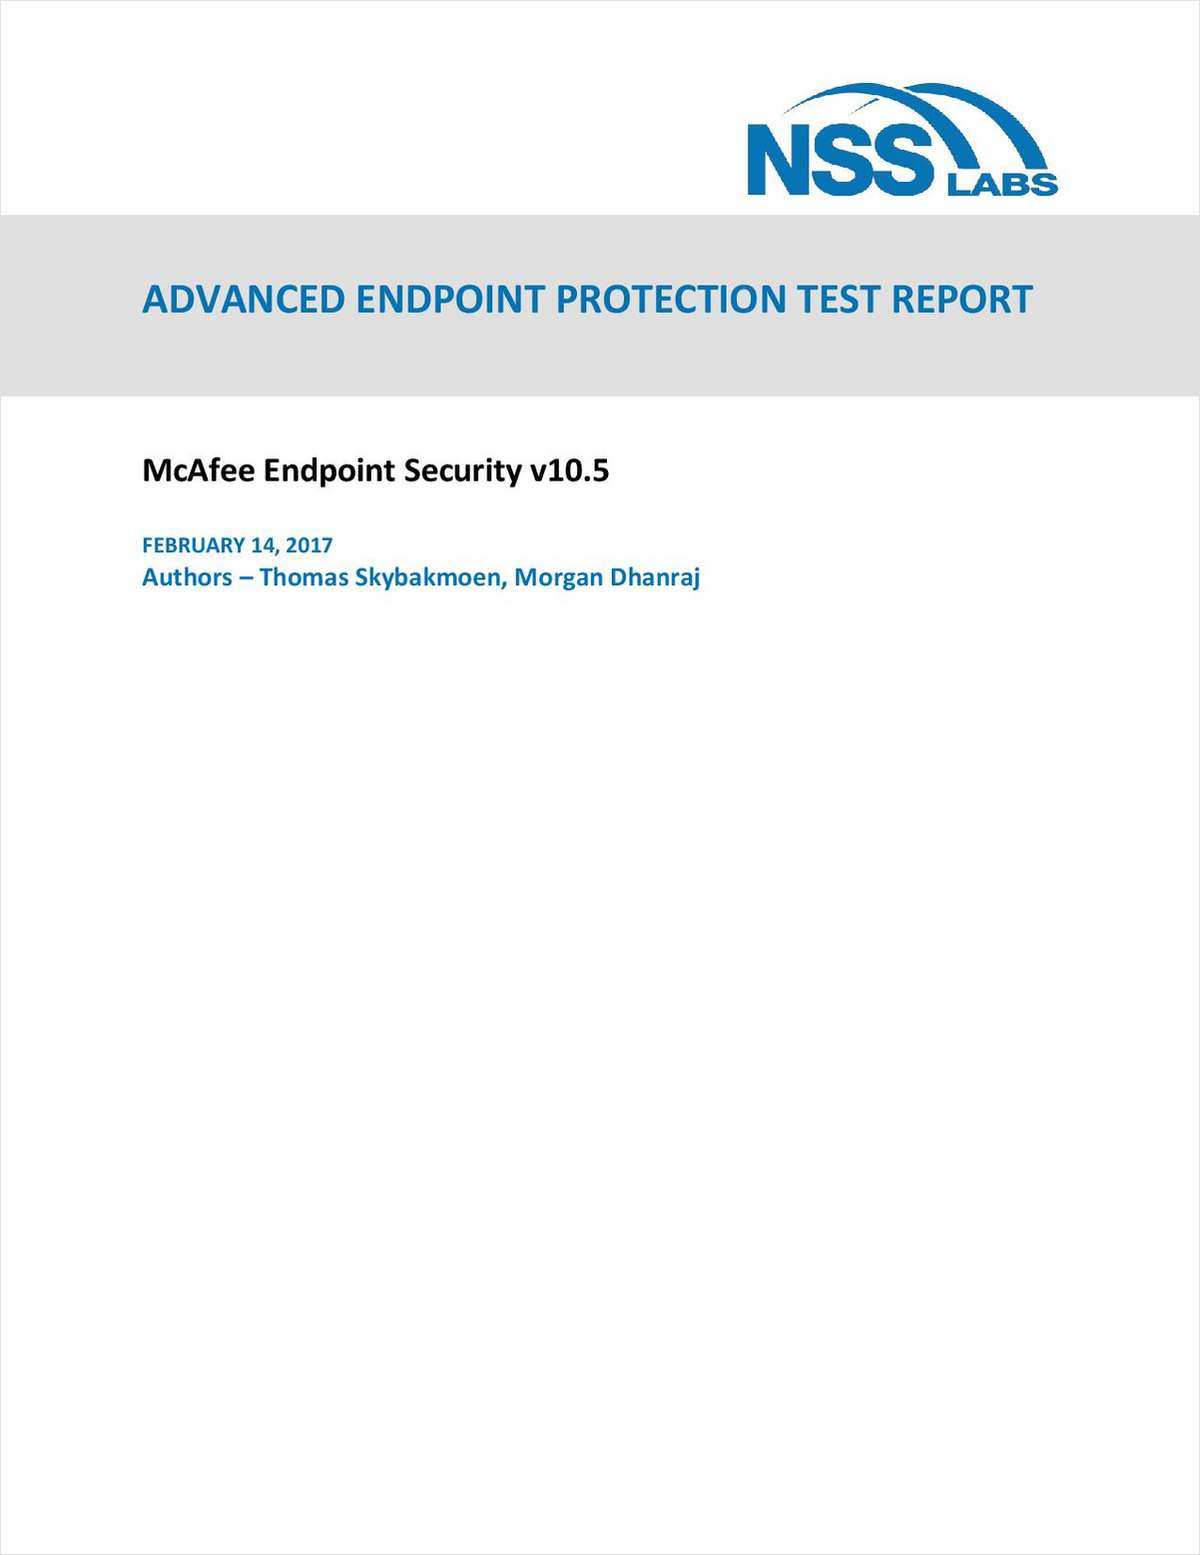 NSS Labs Advanced Endpoint Protection Test Report